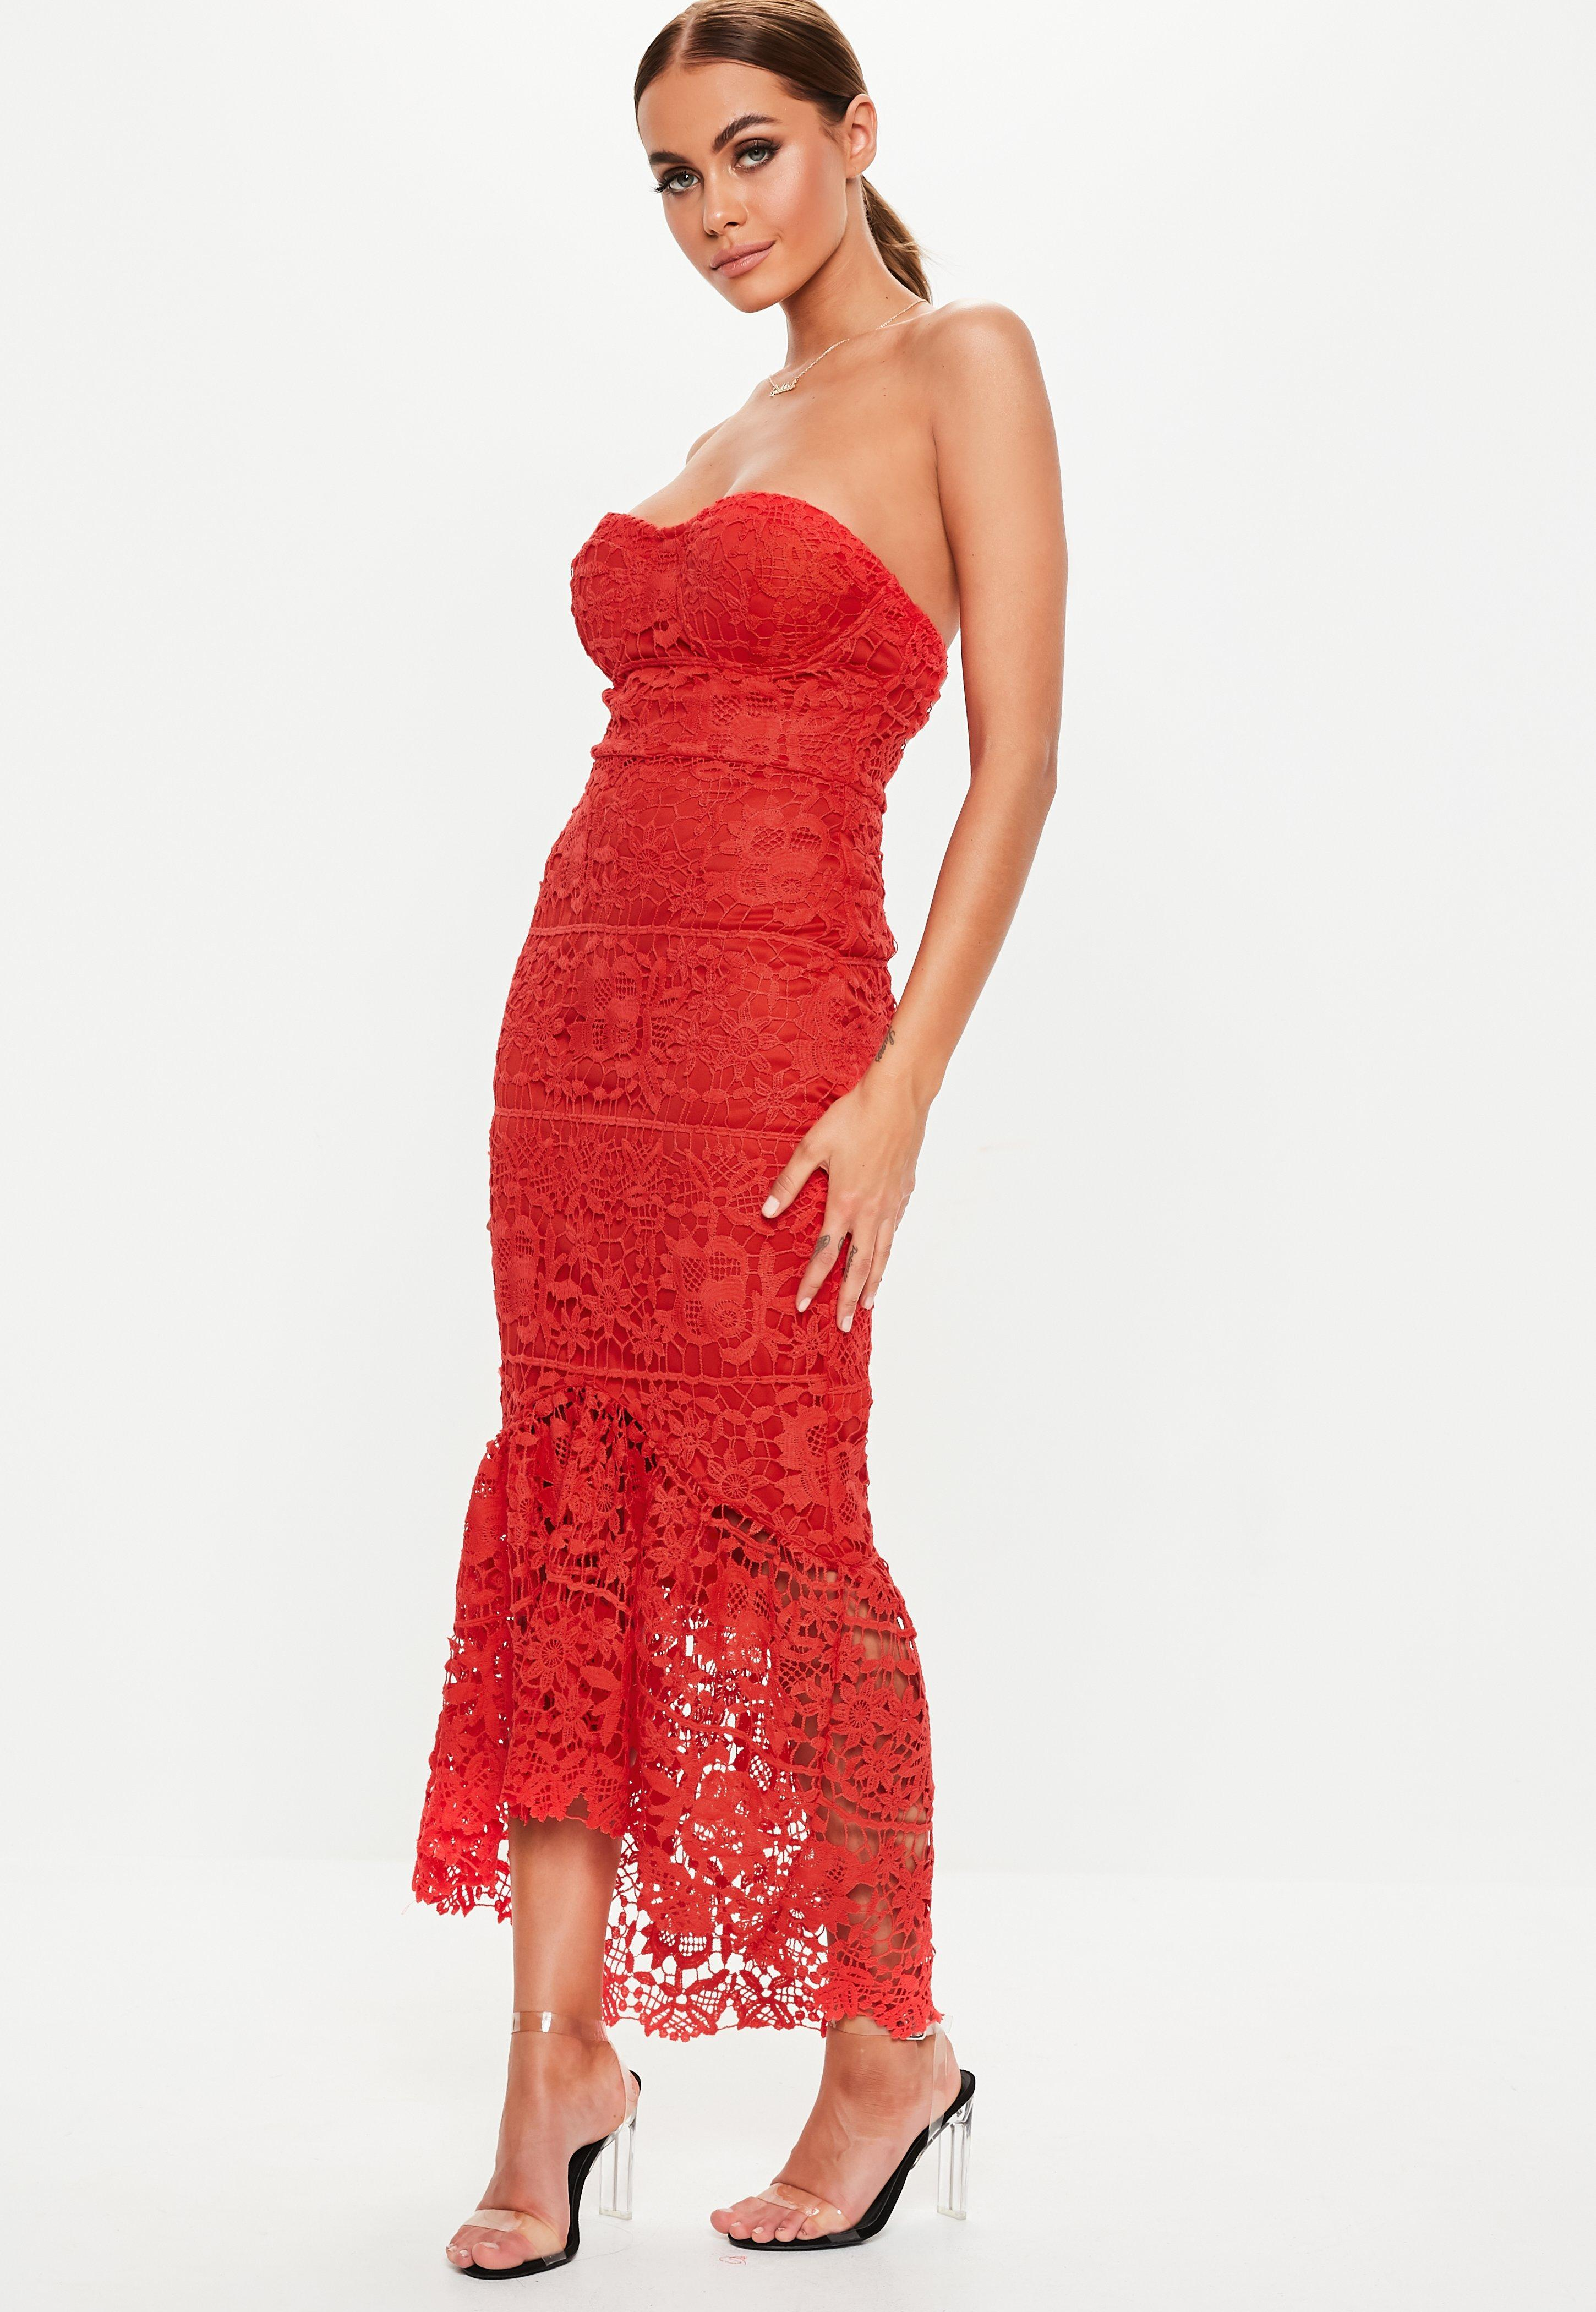 dd0cd73b1fa Missguided - Red Lace Bandeau Bust Cup Midi Dress - Lyst. View fullscreen